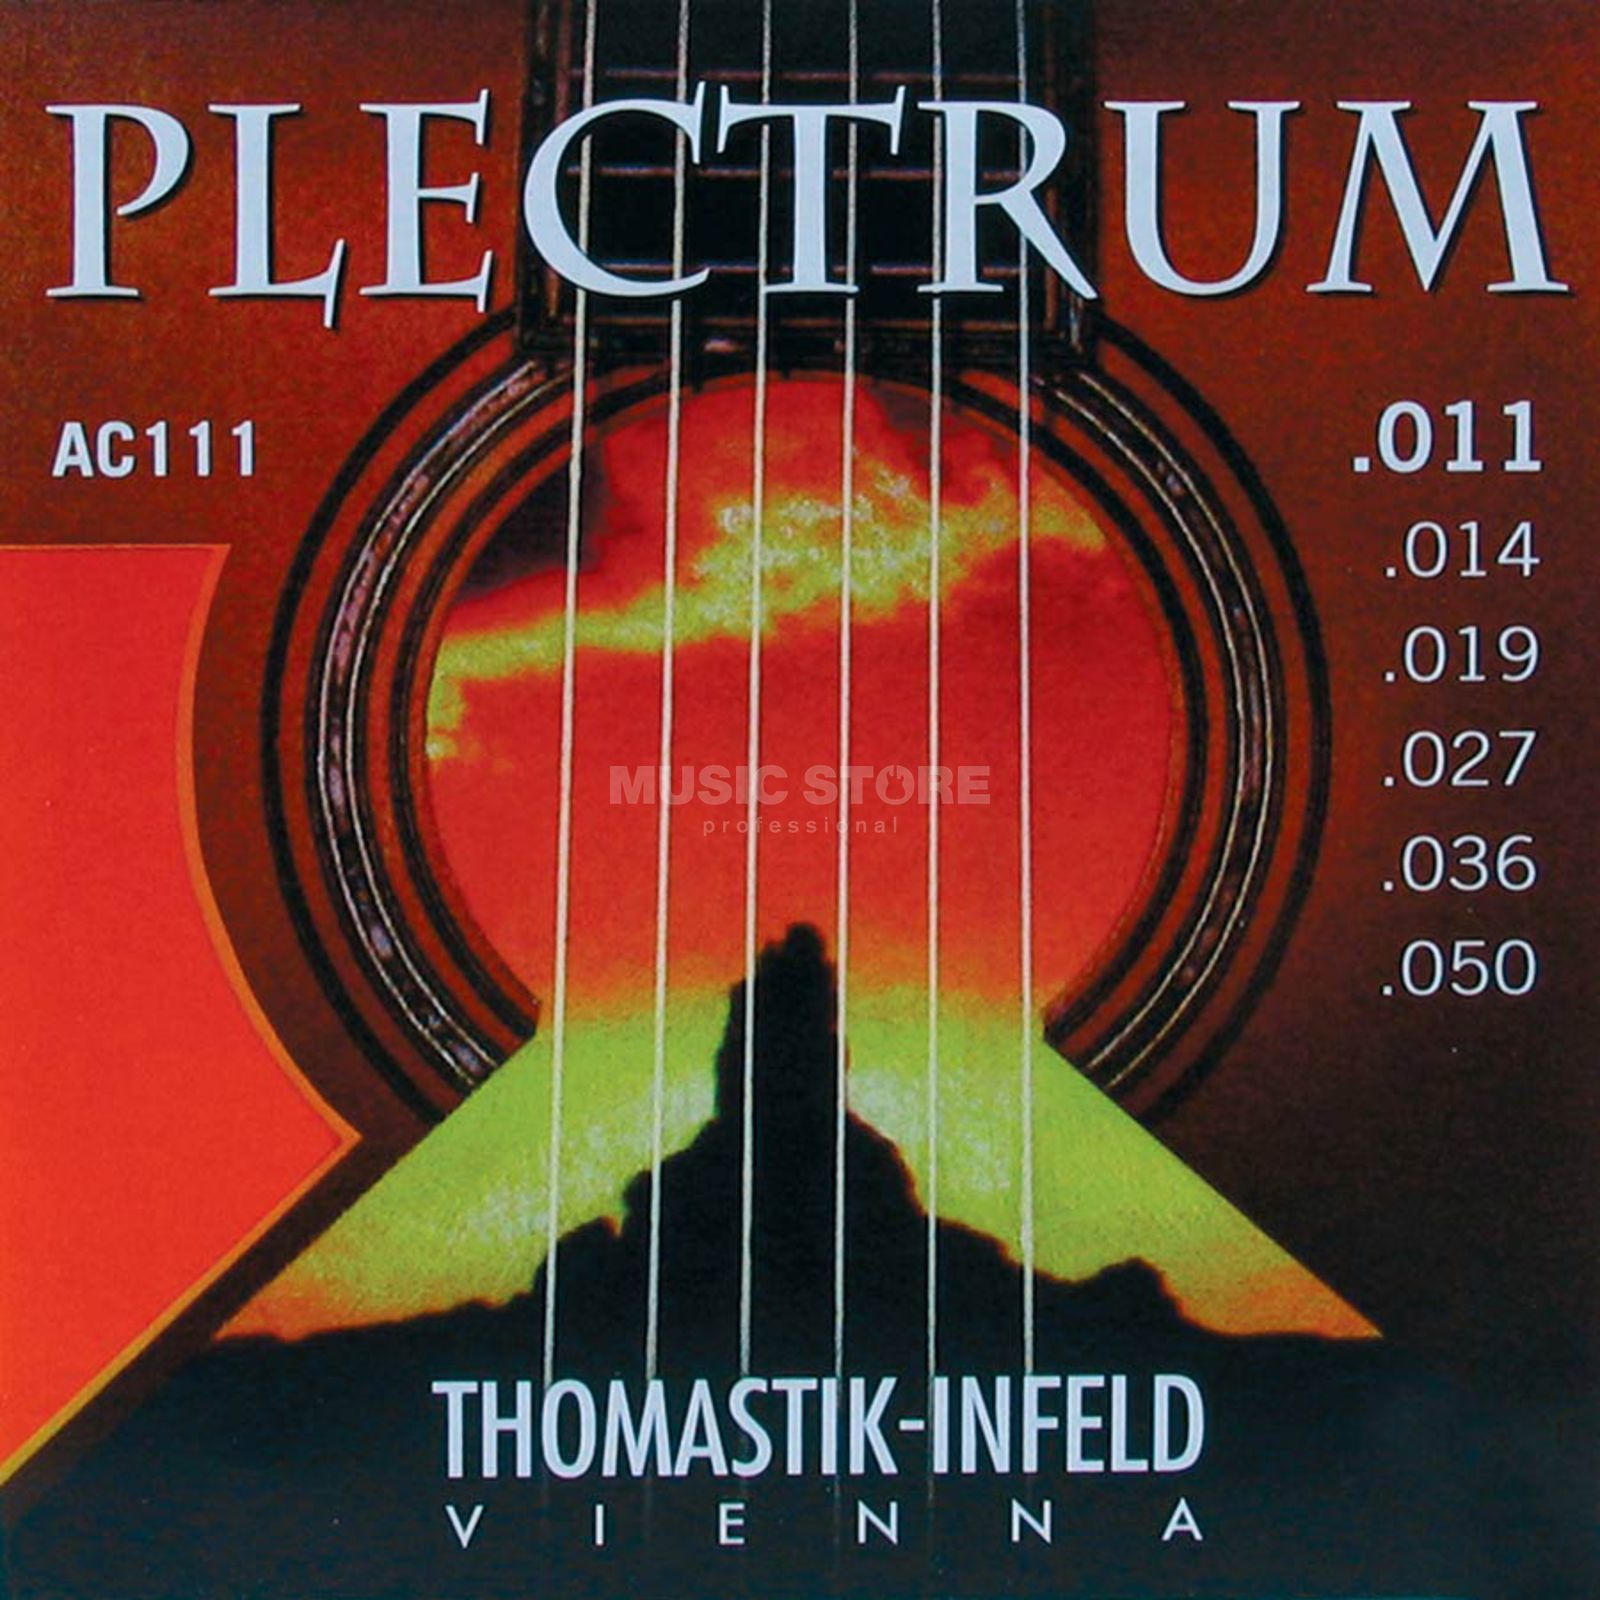 Thomastik AC 111 A-Saiten 11-50 Plectrum light Produktbillede